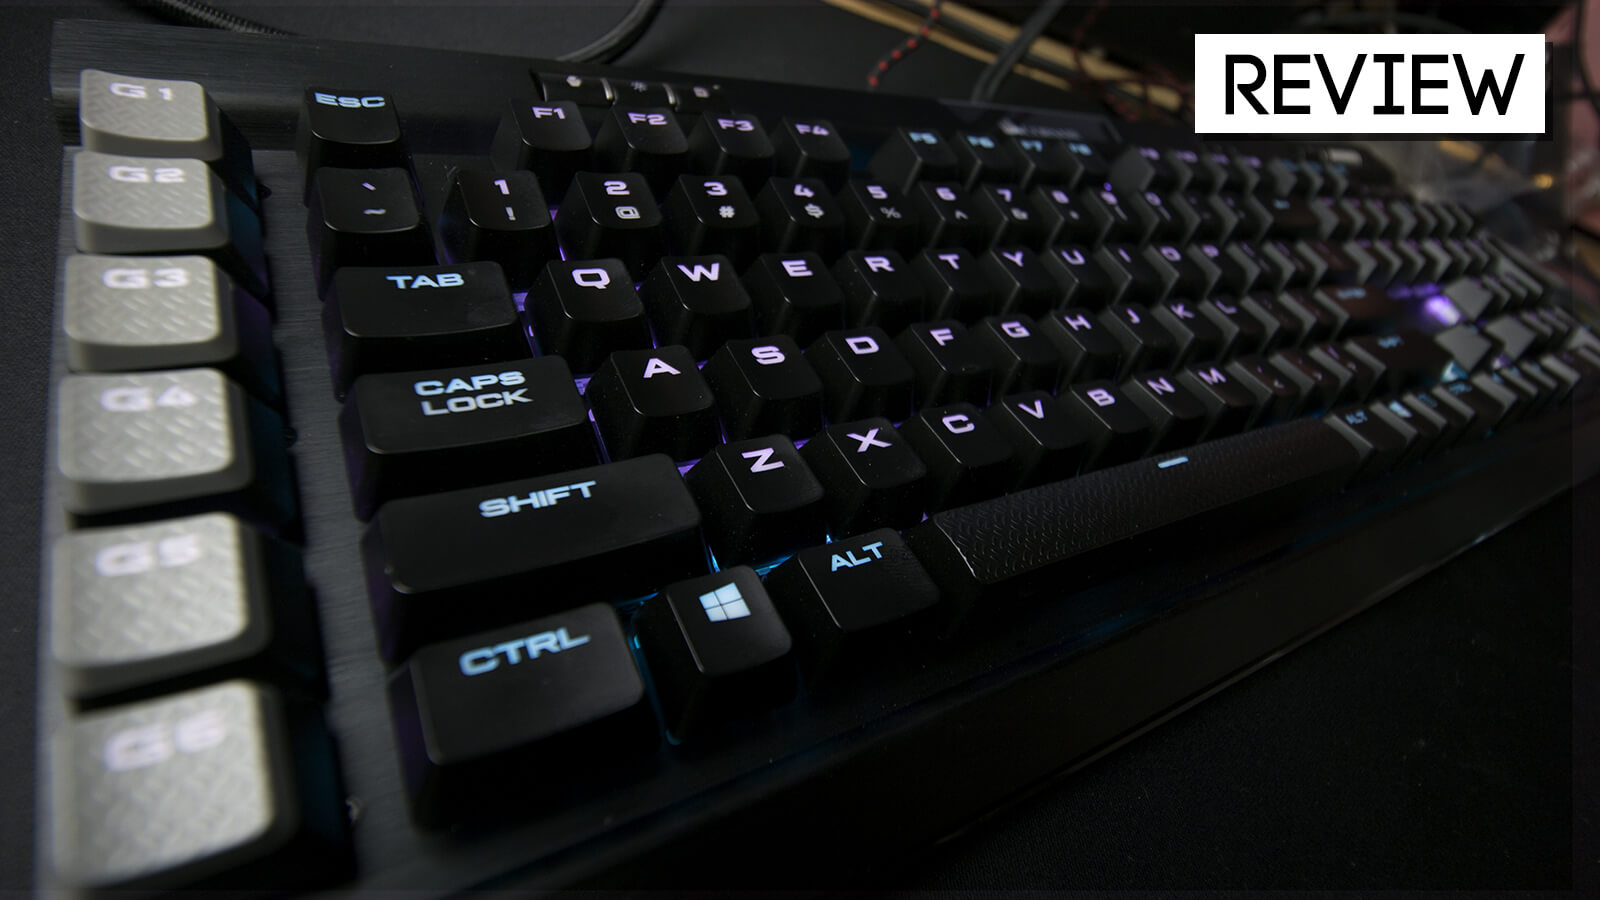 Corsair News And Articles Techspot Razer Keyboard Blackwidow T2 2014 Gaming K95 Rgb Platinum Review